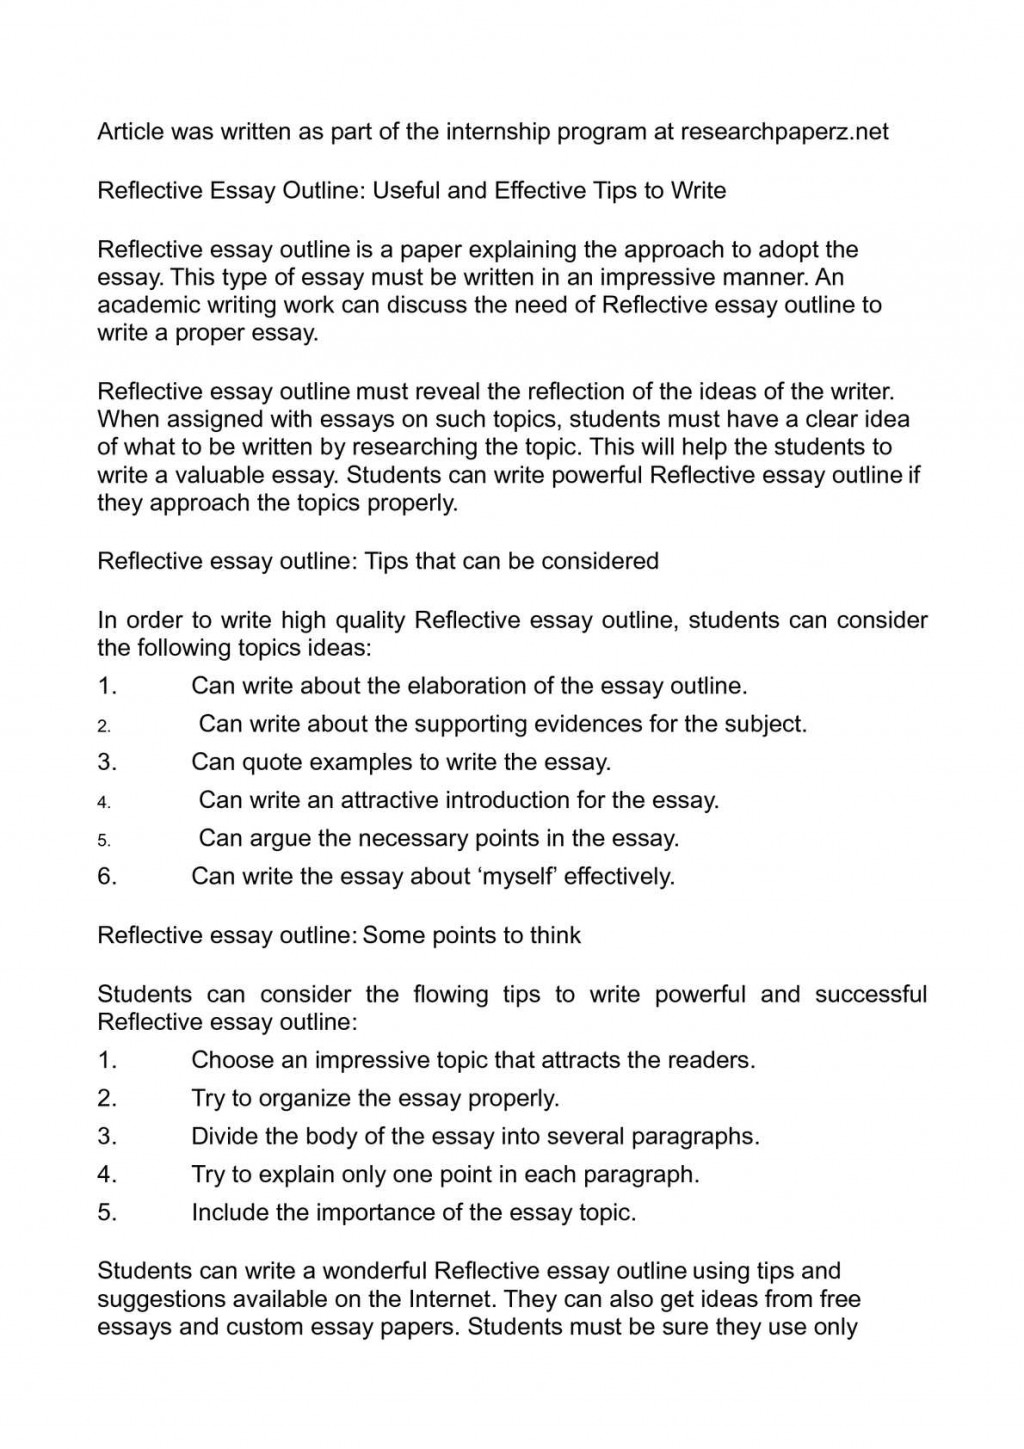 001 Reflective Essay Outline Useful And Effective Tips To Wri On Critical Reading Writing Magnificent Narrative Pdf Large